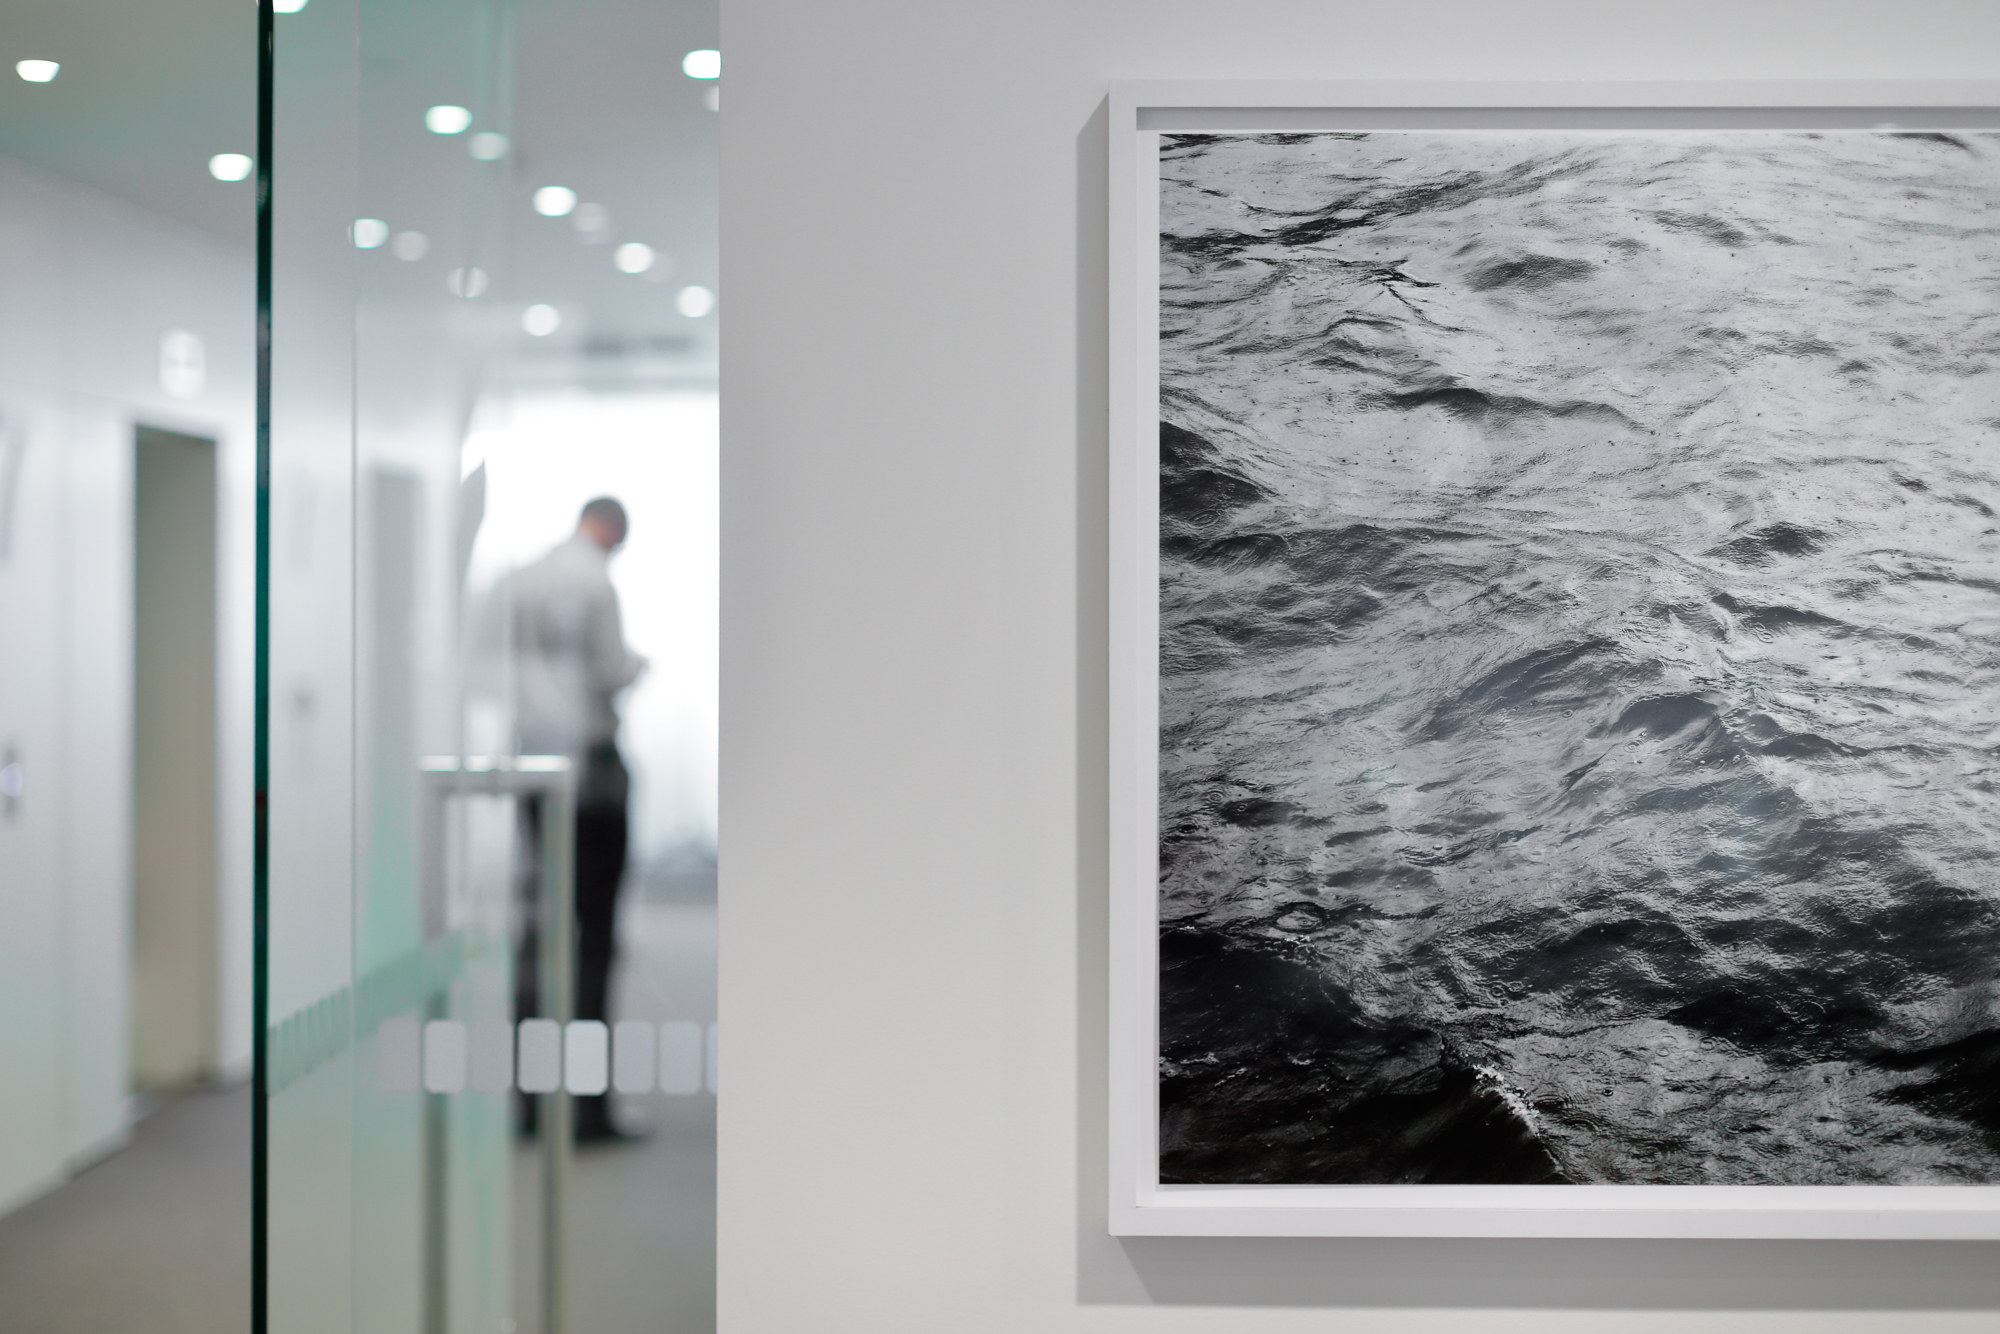 Color photograph of the water surface of the Thames River in London, by artist Roni Horn.